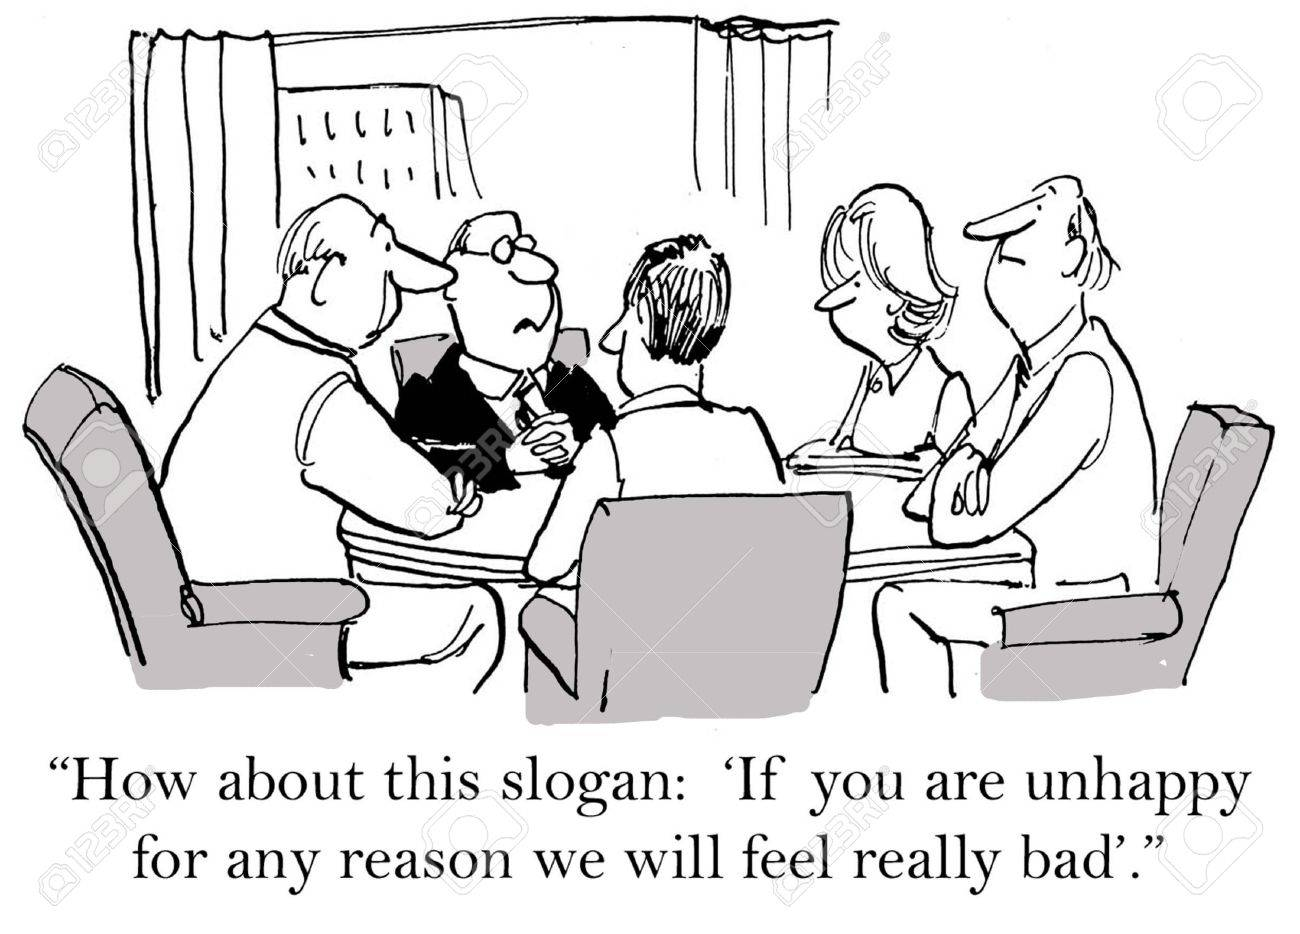 Cartoon of businessman saying new slogan, if you are unhappy for any reason, we will feel really bad. - 36657618